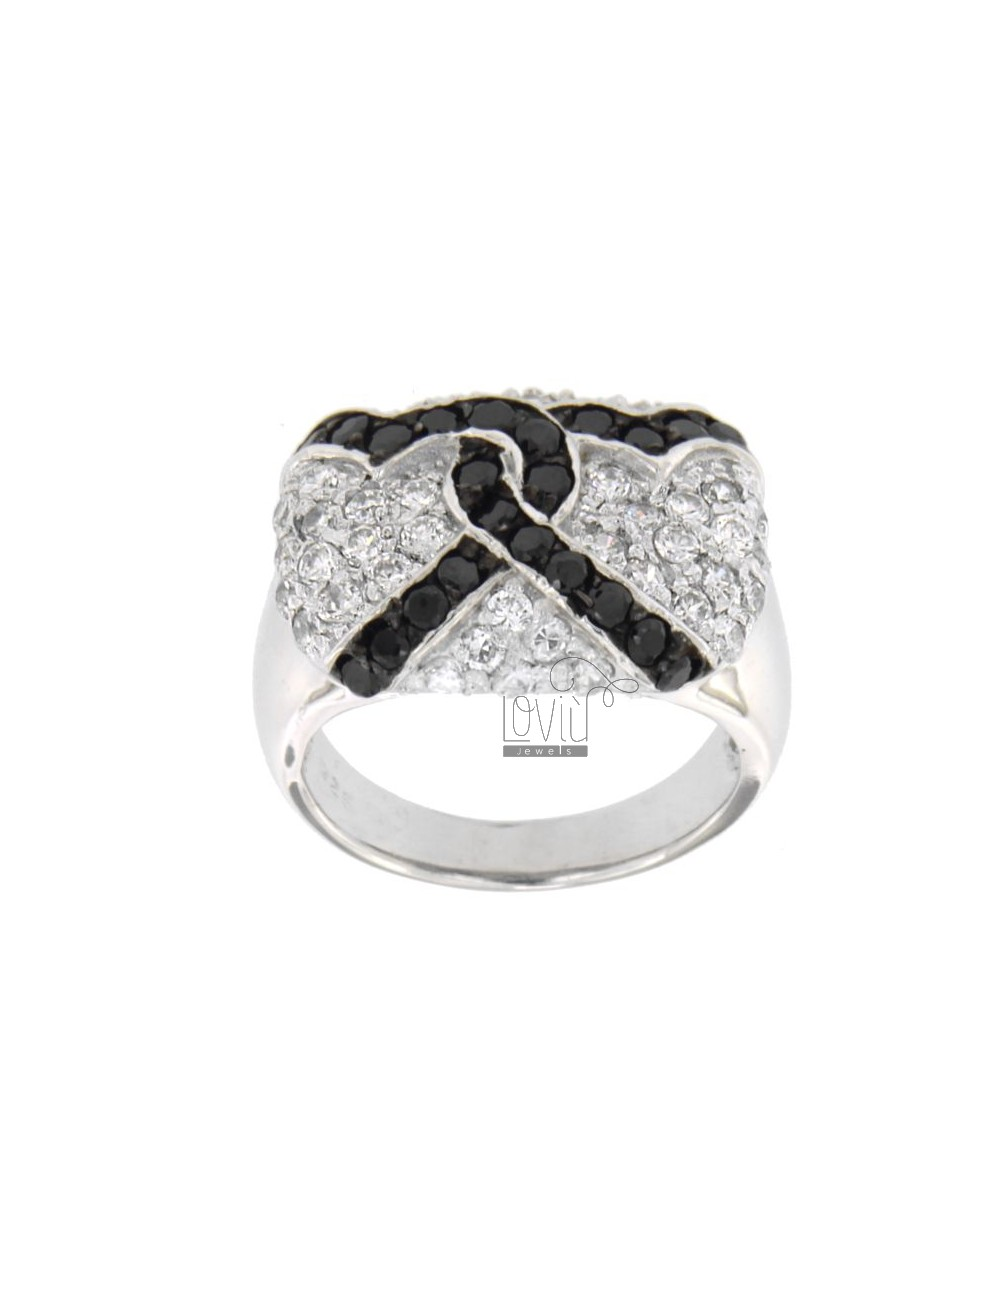 RECTANGULAR RING WITH CUBIC ZIRCONIA WHITE HEARTS WITH STRAW AND BLACKS IN TIT AG 925 SIZE 18